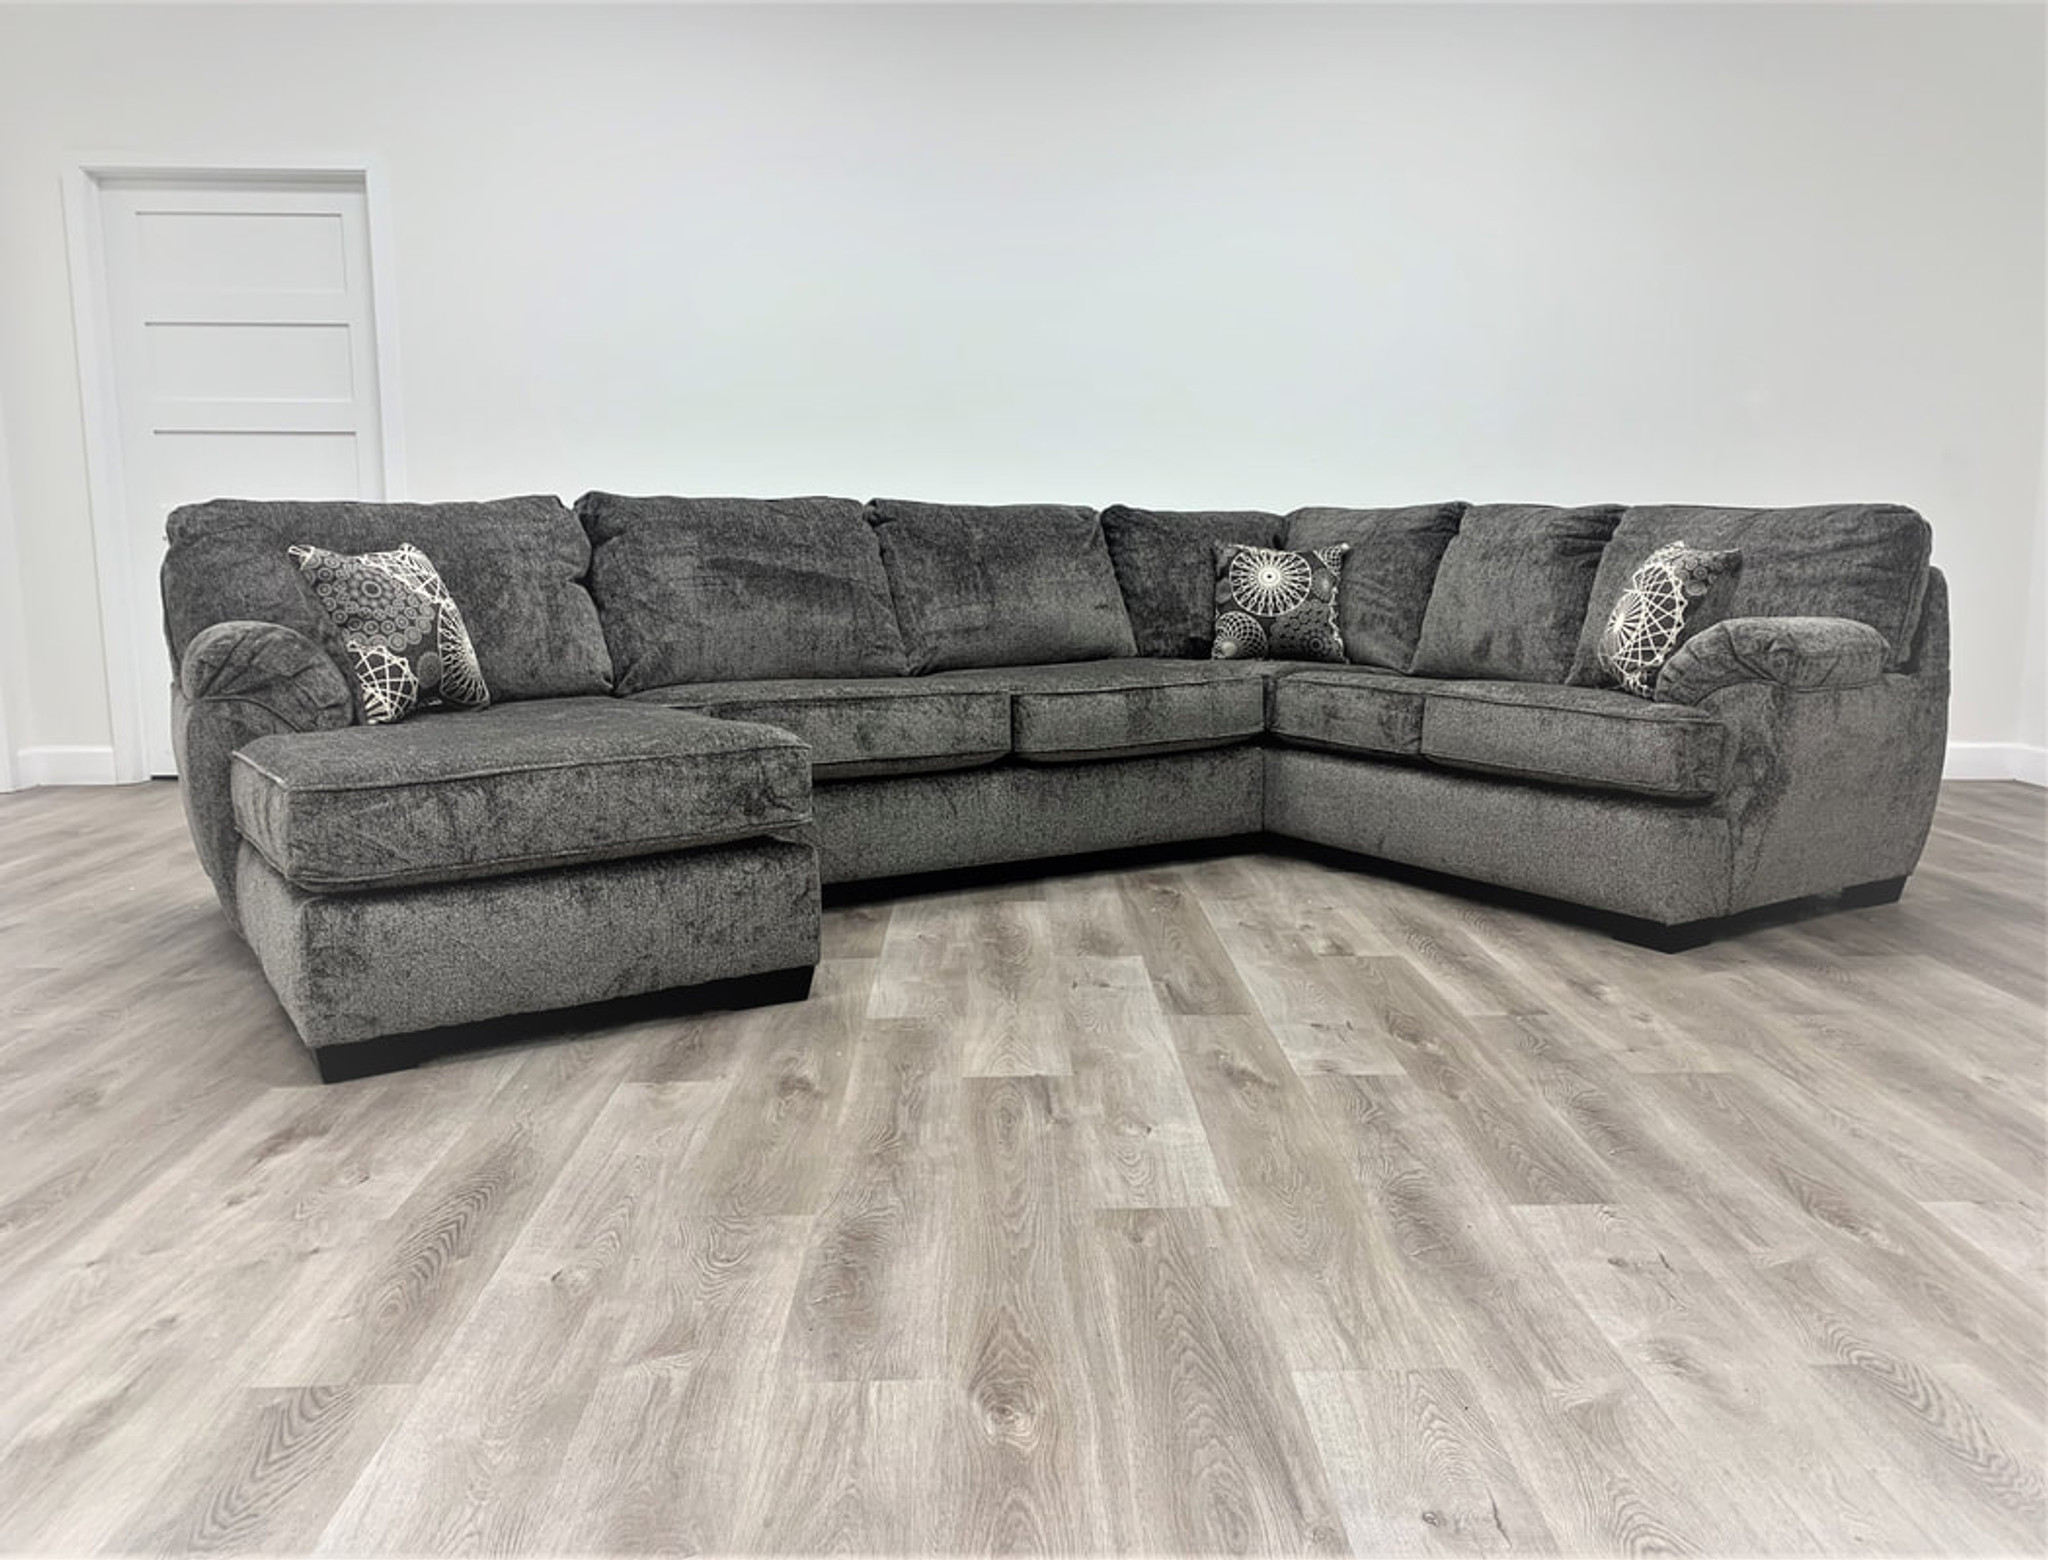 3 Pcs Brentwood Sectional Sofa In Grey Color Happy Home Industries Houston Texas Brentwood